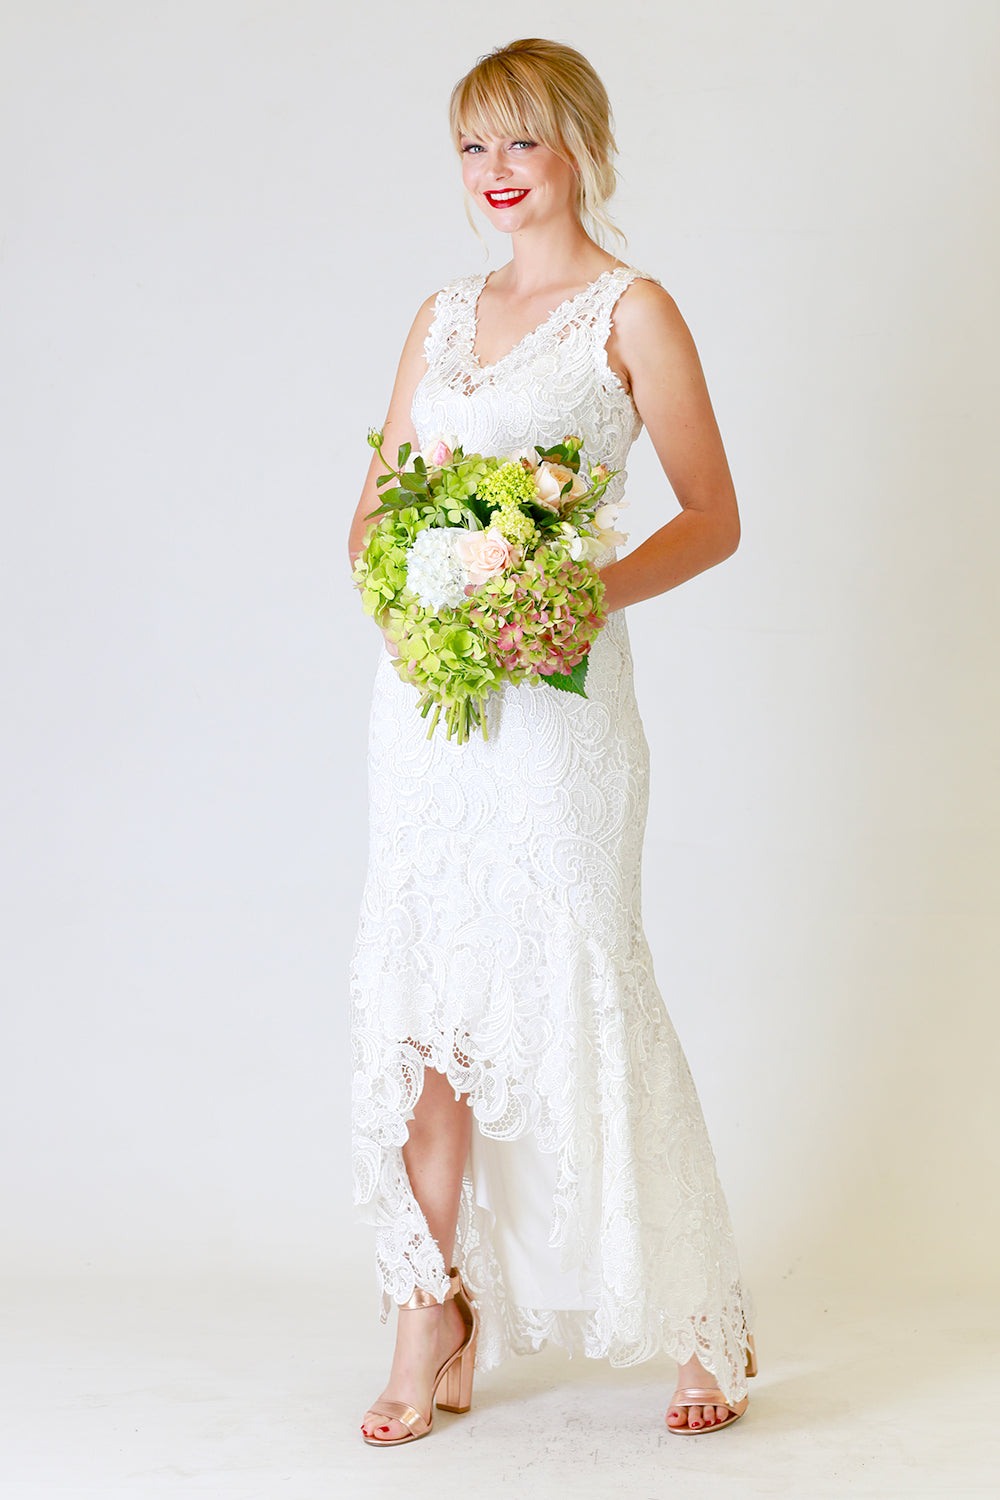 Dani Dress, Annah Stretton Bridal, Lace Wedding Dress, Shot on Model